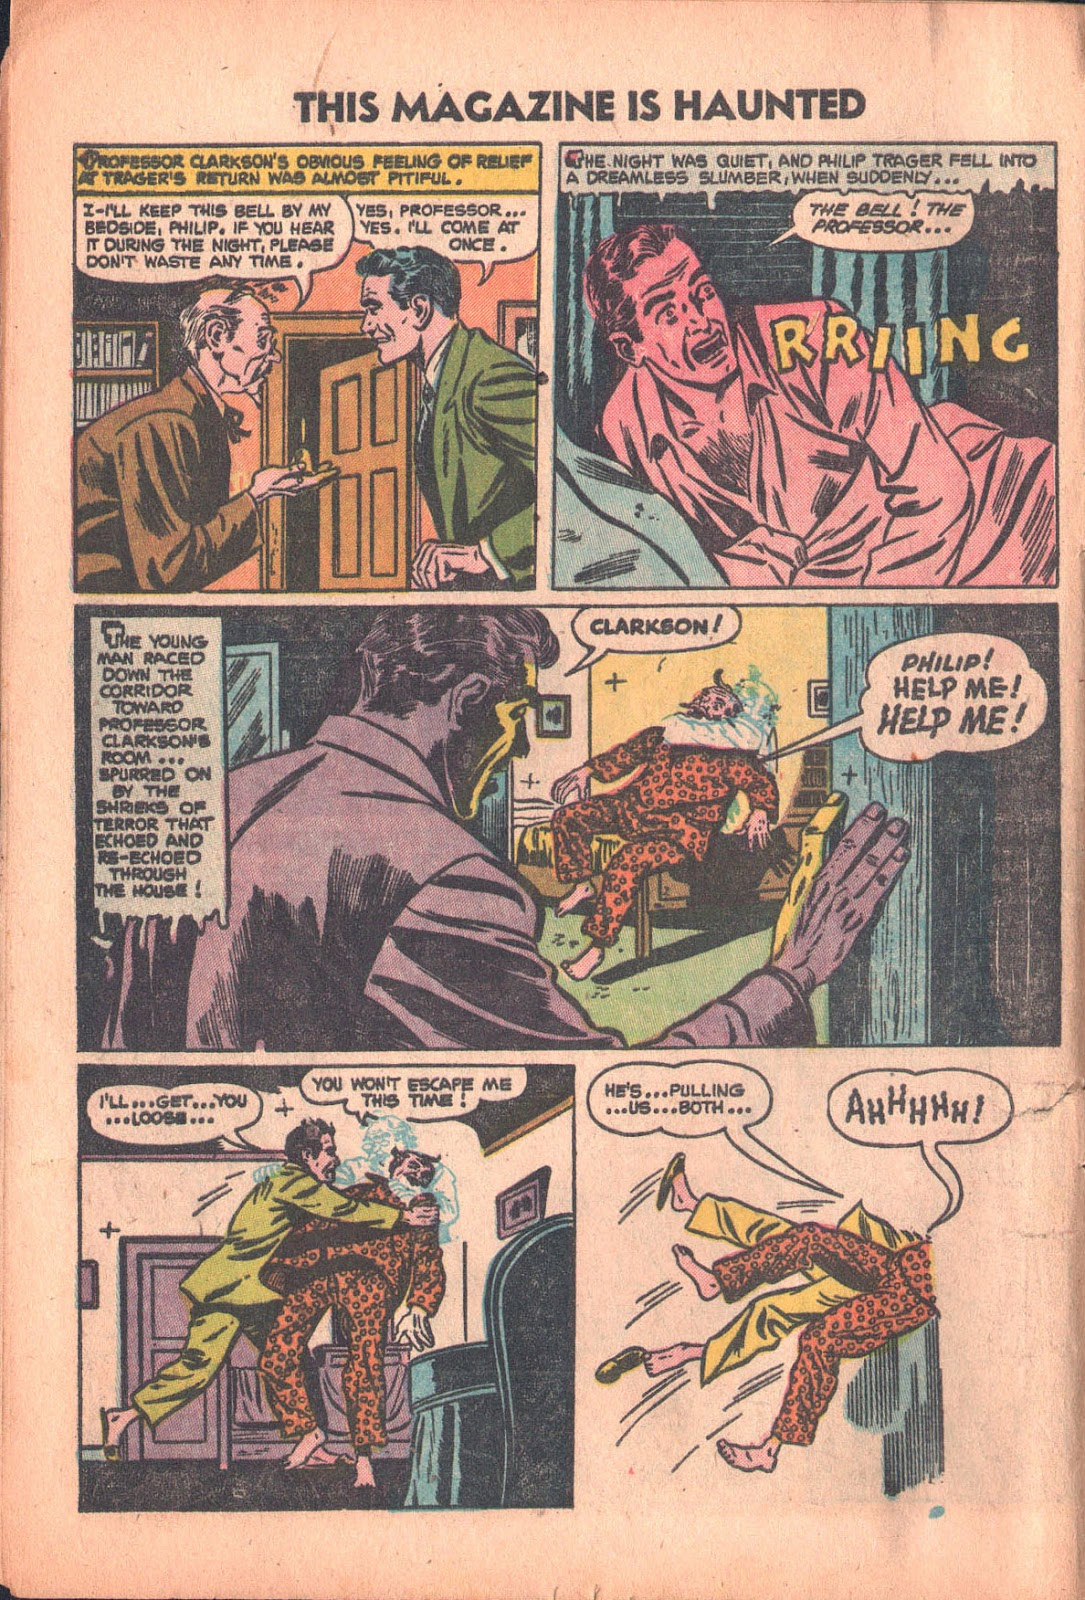 Read online This Magazine Is Haunted comic -  Issue #15 - 8